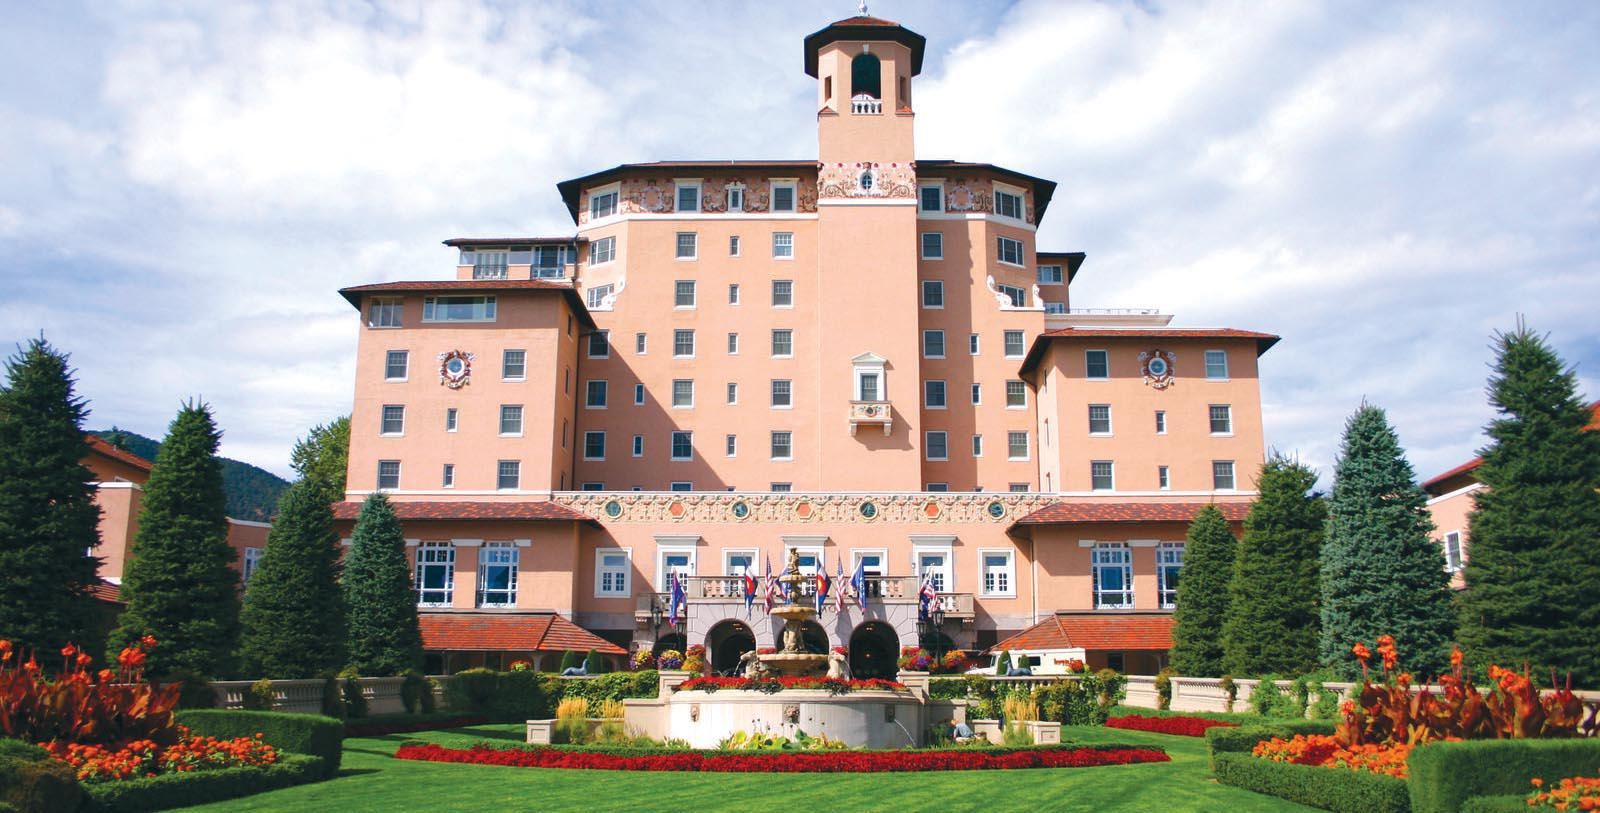 Image of Entrance The Broadmoor, 1918, Member of Historic Hotels of America, in Colorado Springs, Colorado, Special Offers, Discounted Rates, Families, Romantic Escape, Honeymoons, Anniversaries, Reunions